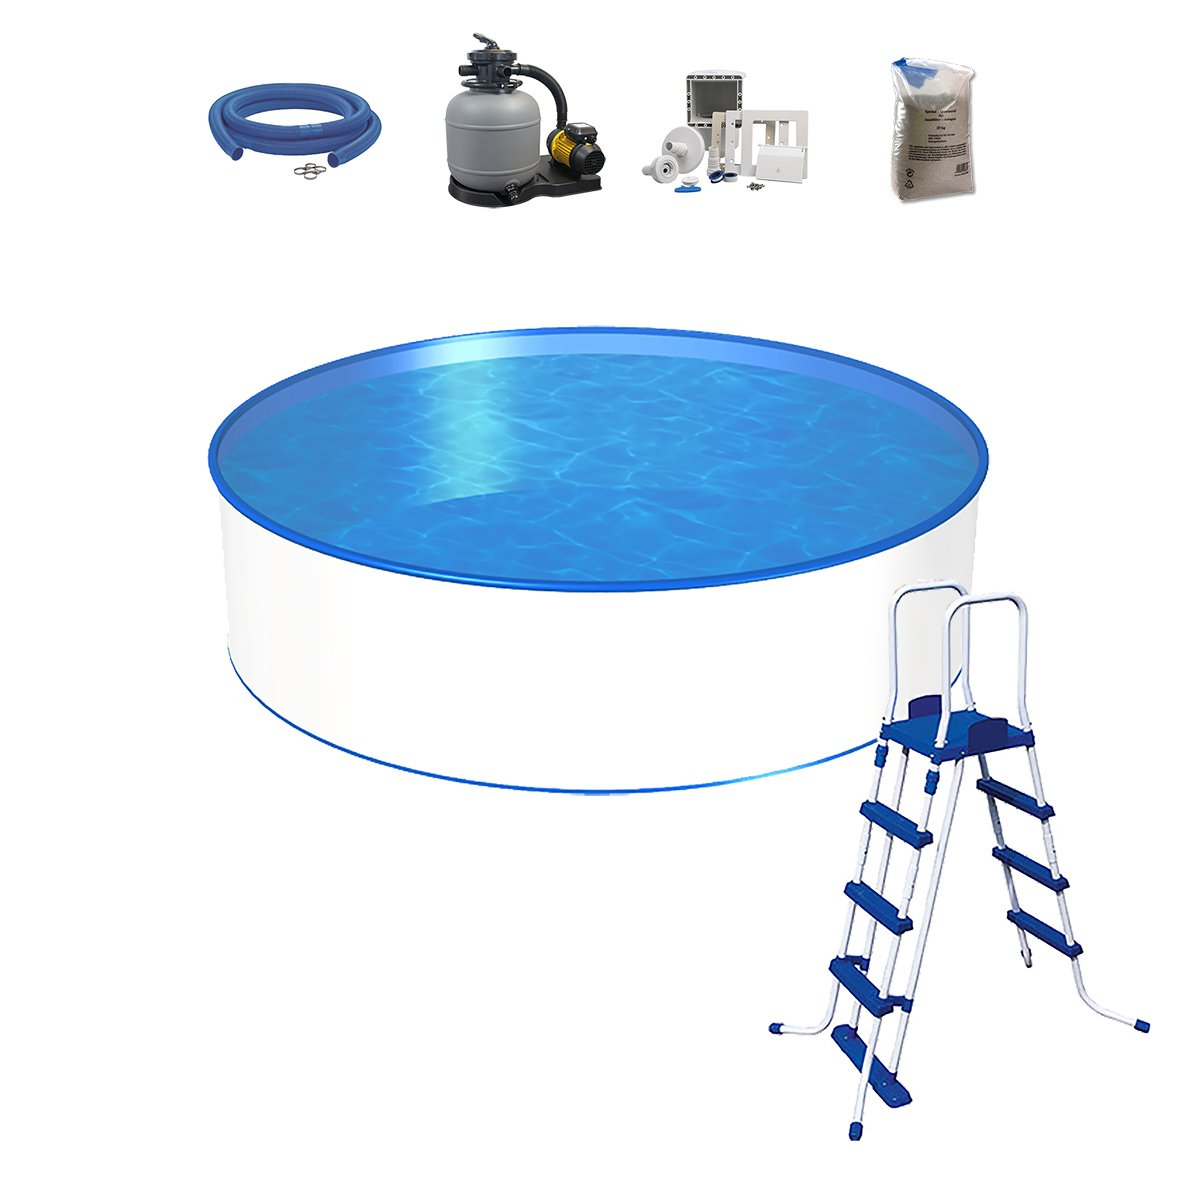 Pool Set, tamaño a elegir, profundidad 120 cm, piscina con pared ...